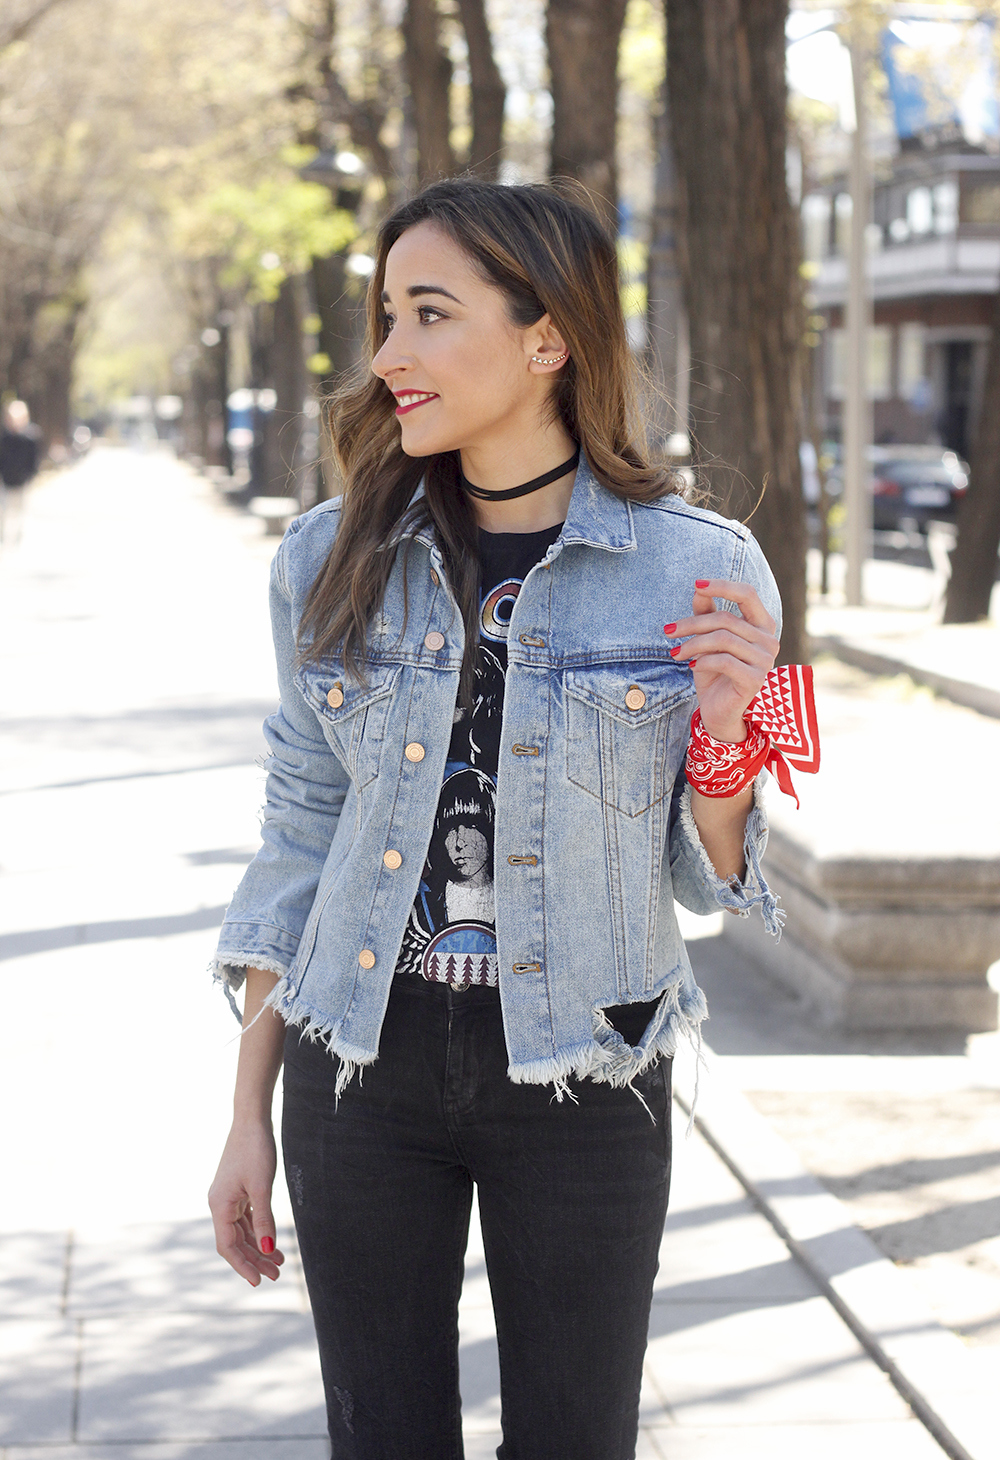 Ripped denim jacket black jeans ramones t-shirt heels style outfit fashion13